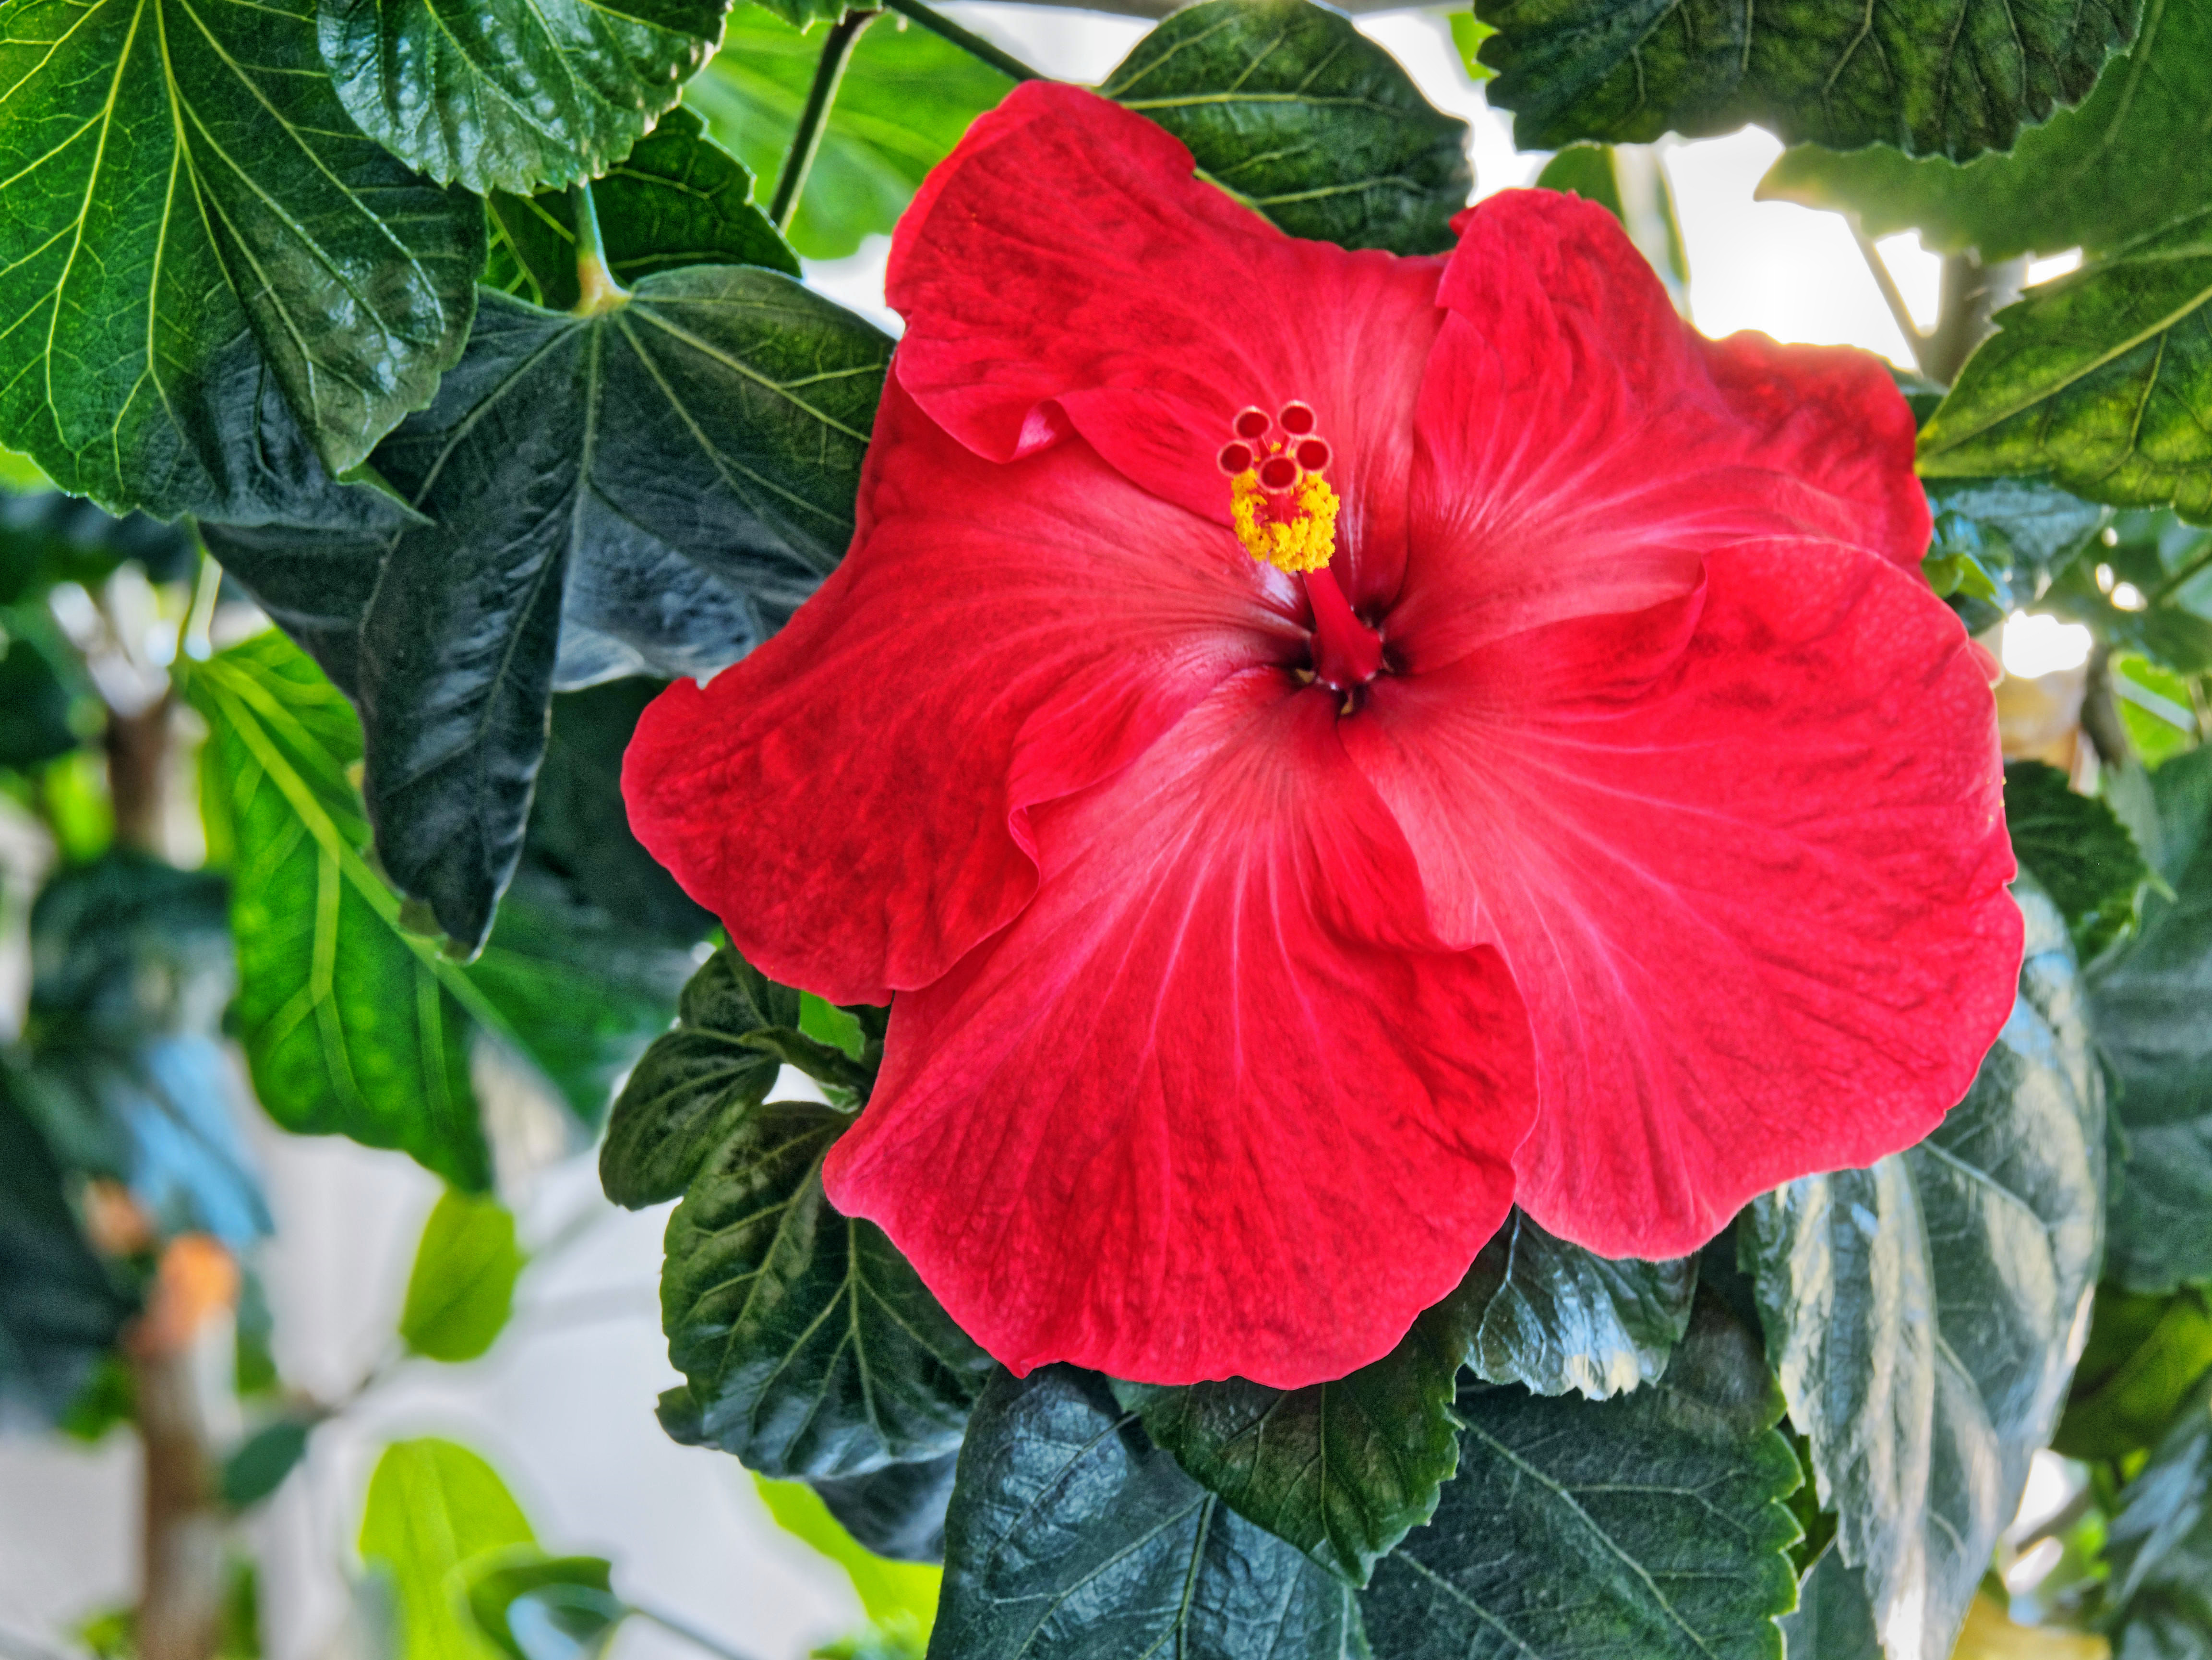 This should be Hibiscus-45.jpeg.  Is it missing?